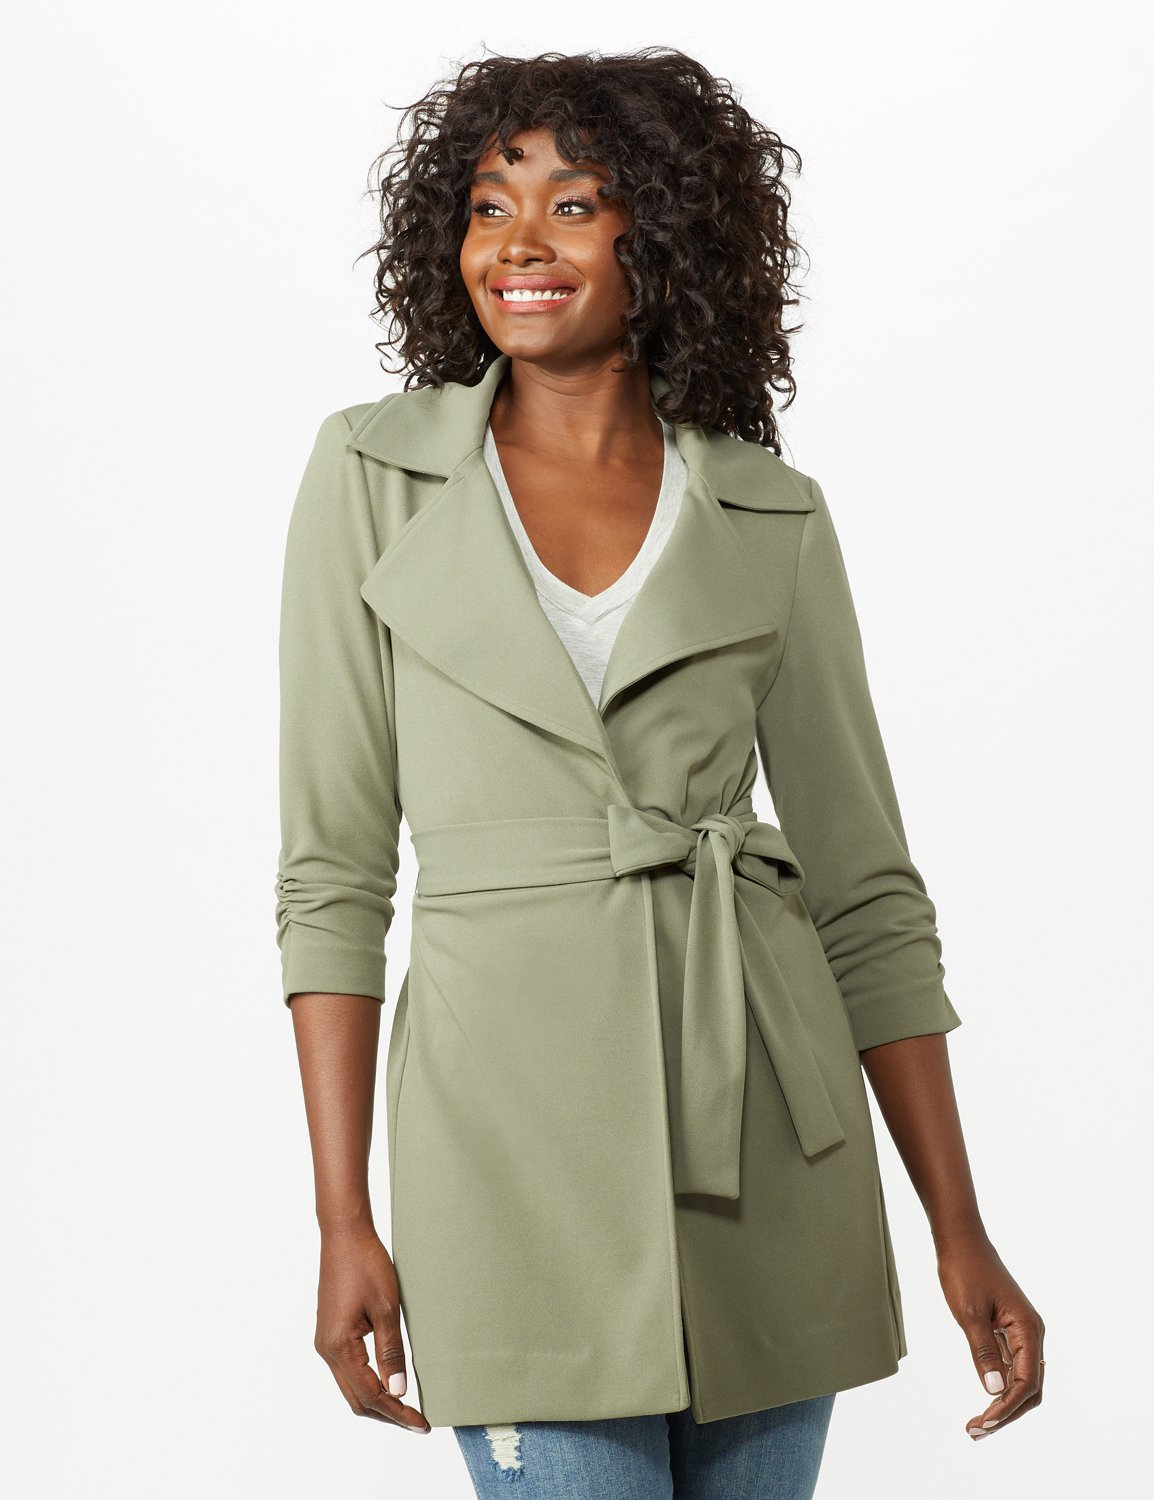 Knotched Collar Wrap Jacket With Tie Belt -Rugged Drab - Front